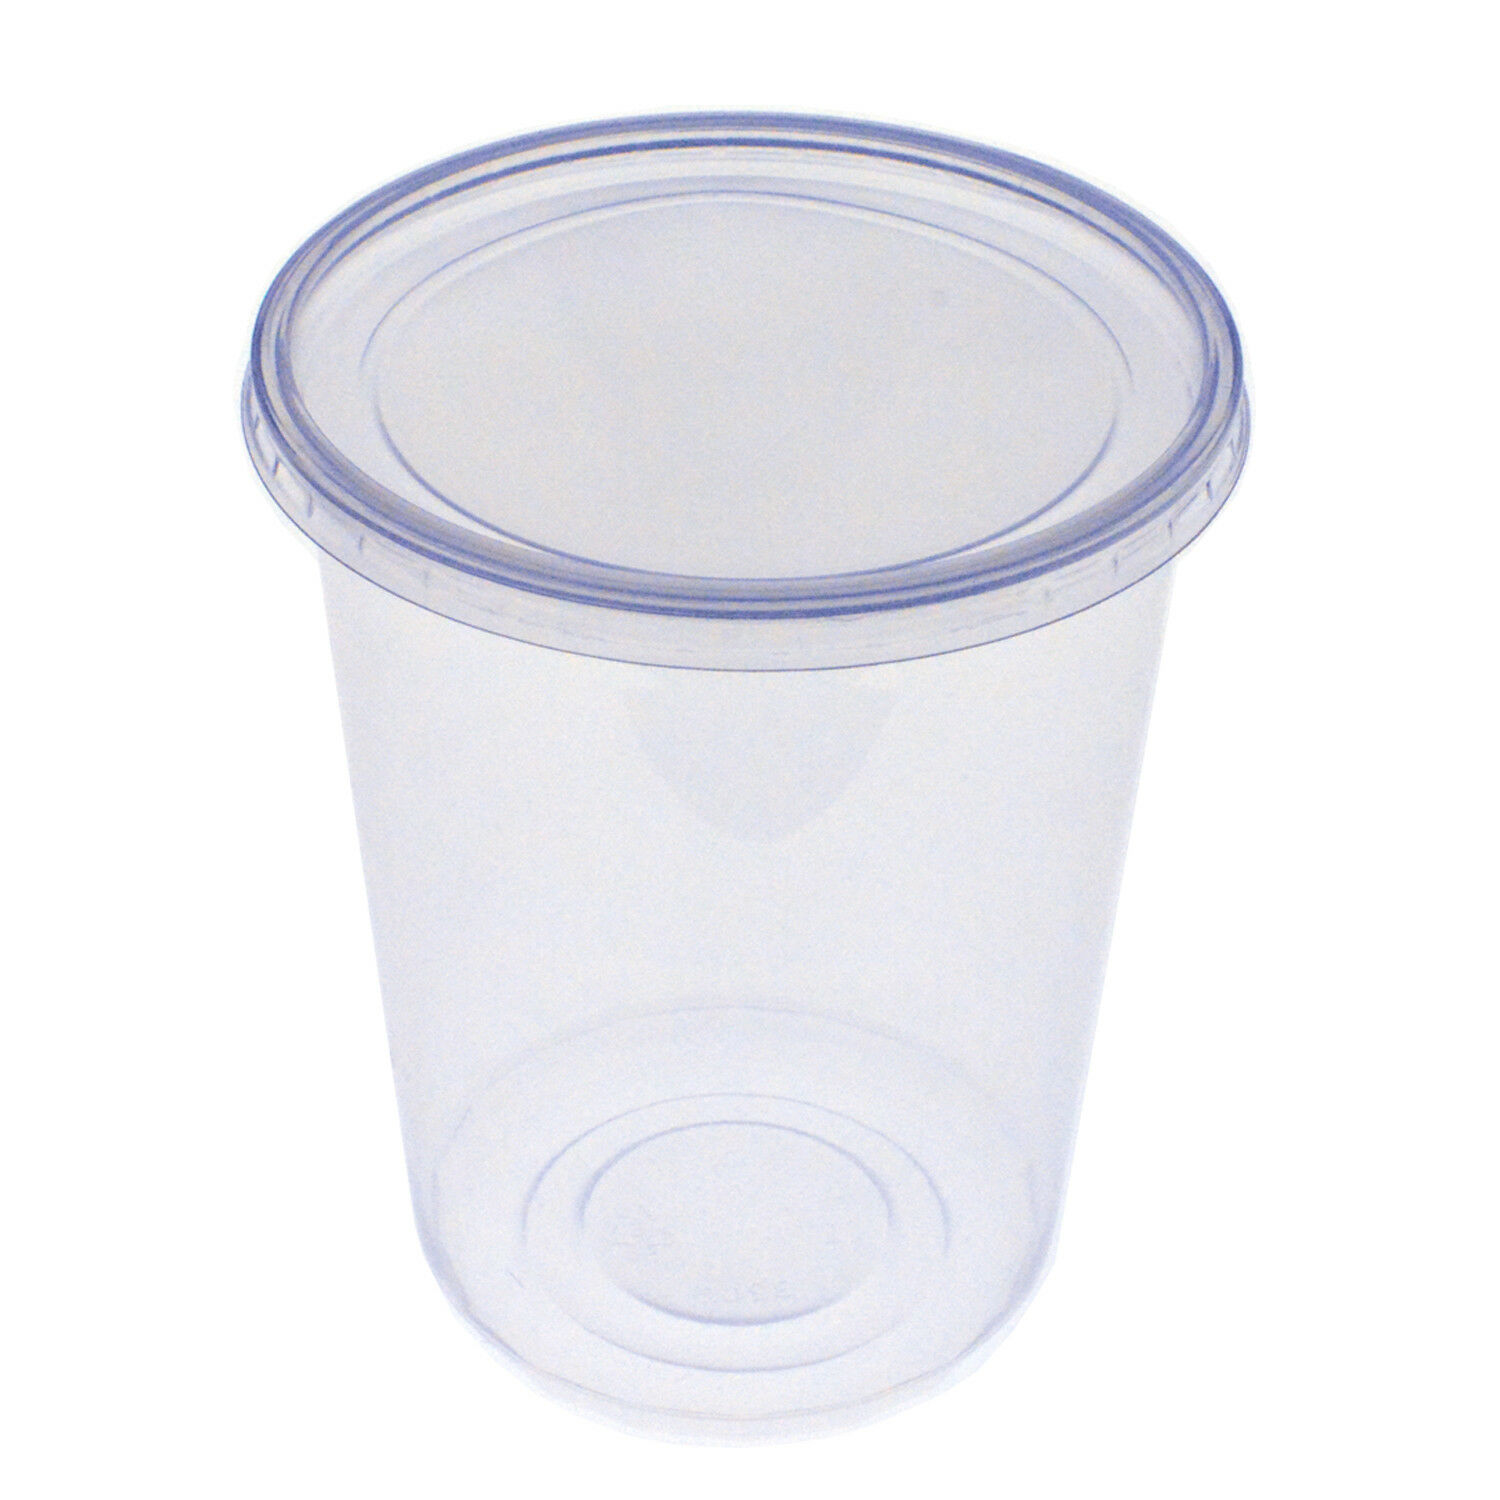 32 oz Round Plastic Deli Food Containers with Lids BPA FREE- FREE SHIPPING